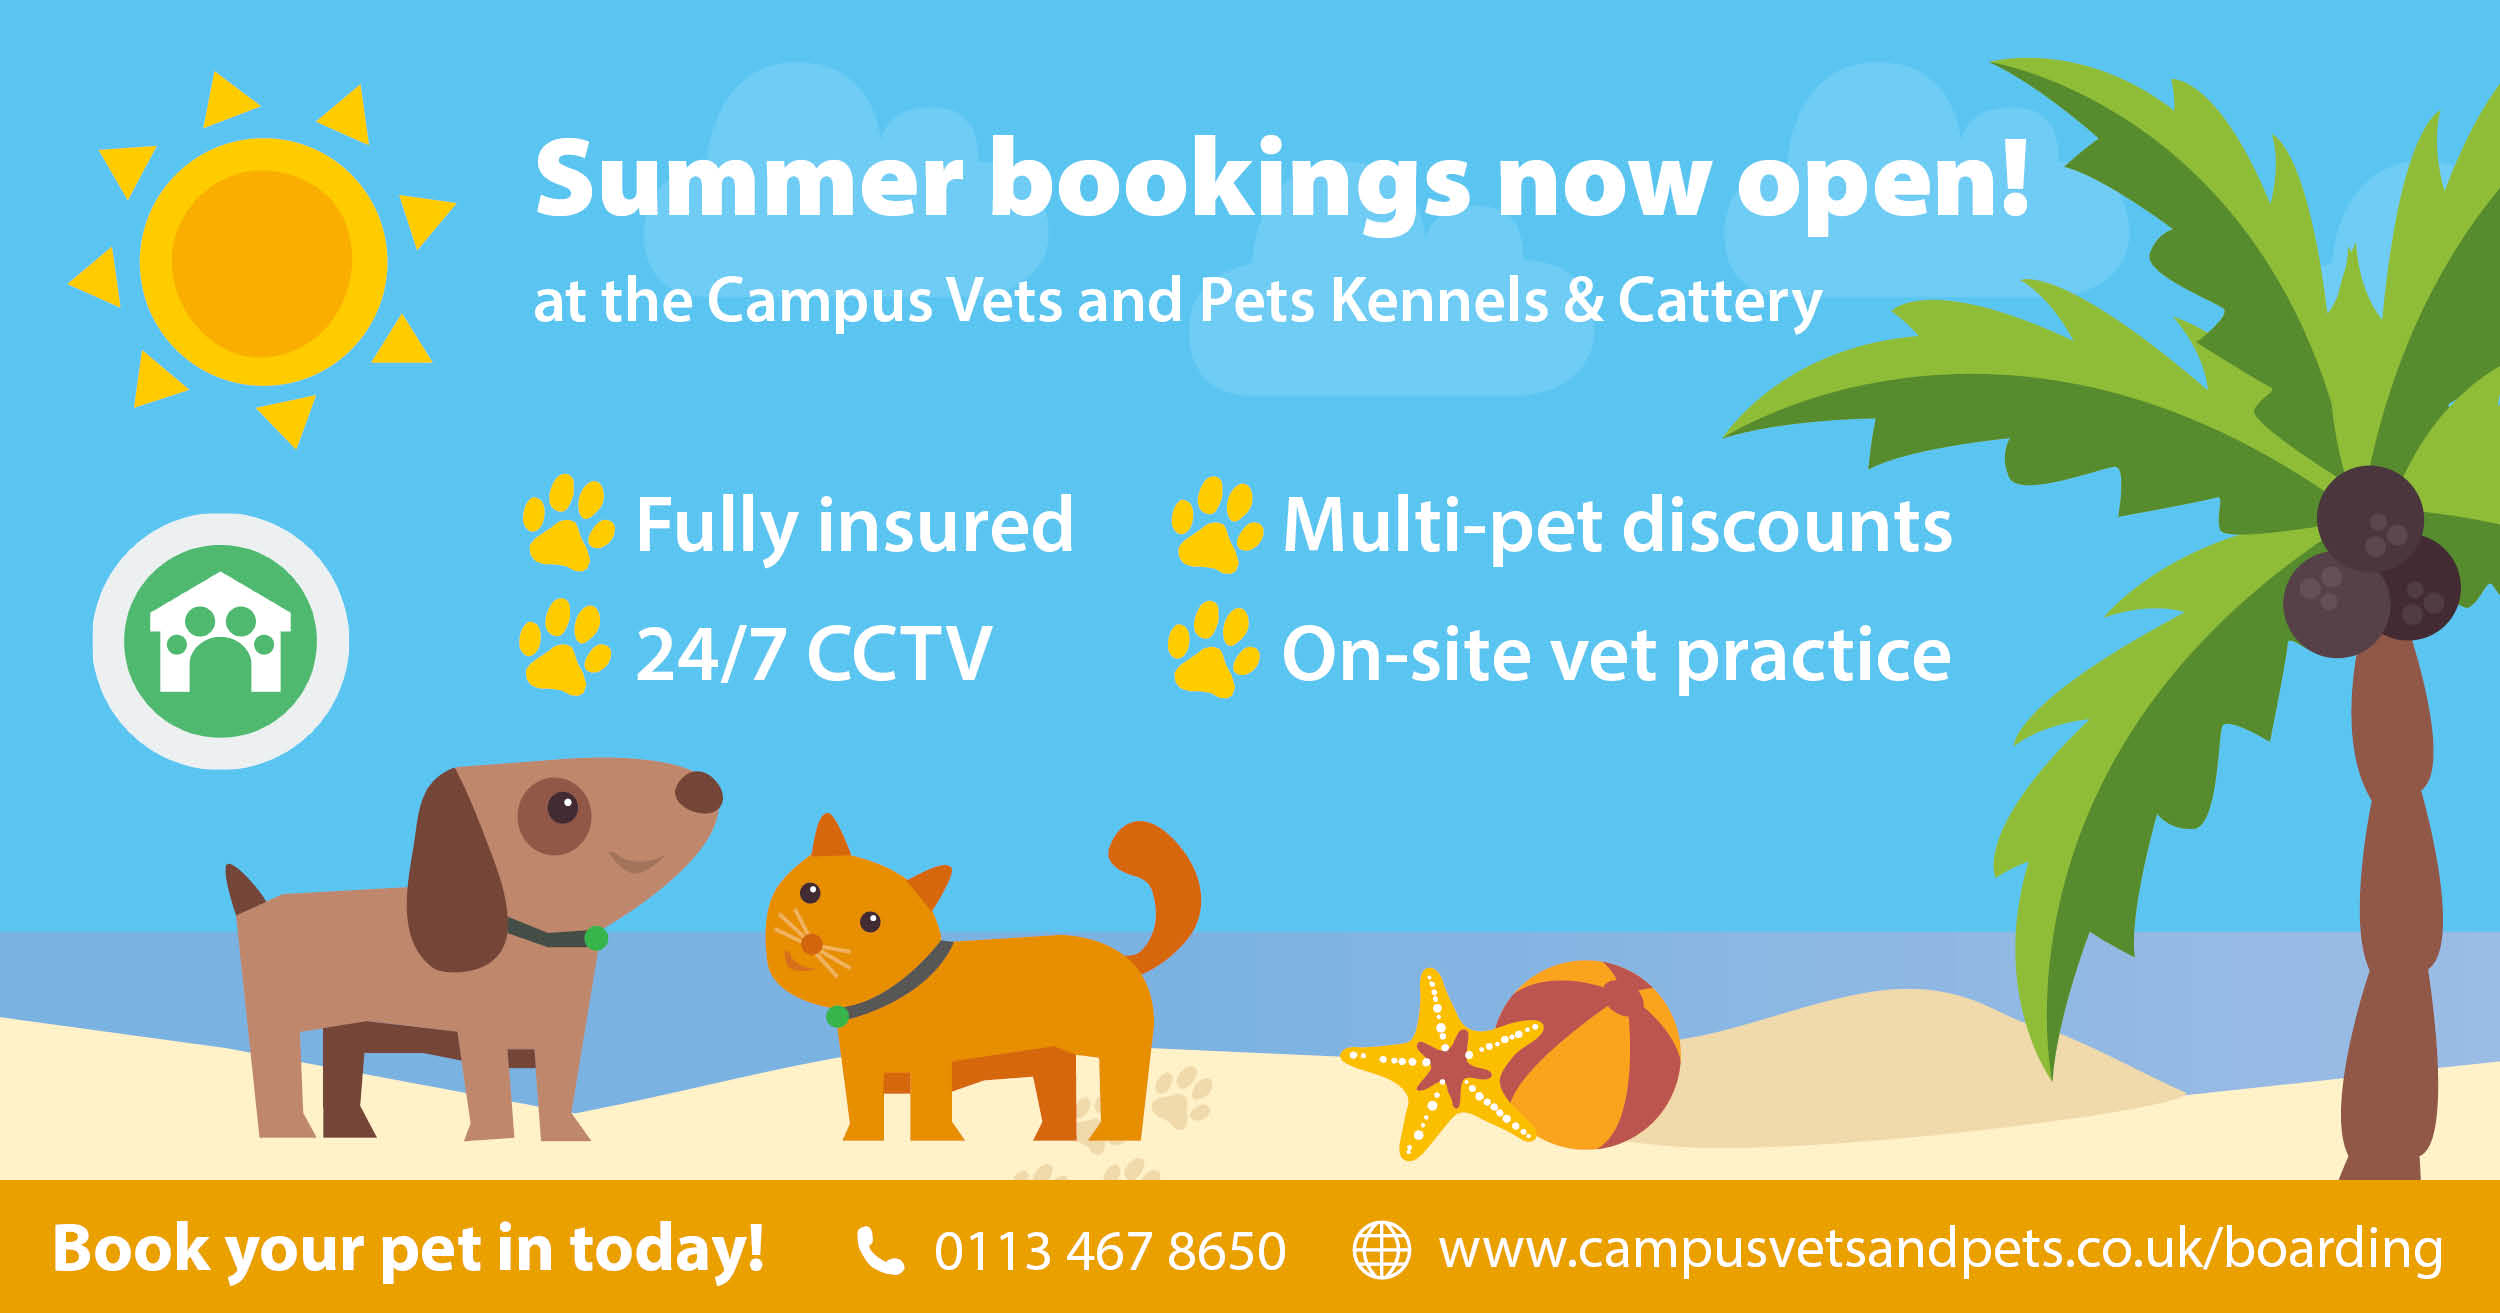 Summer bookings open at the kennels and cattery!